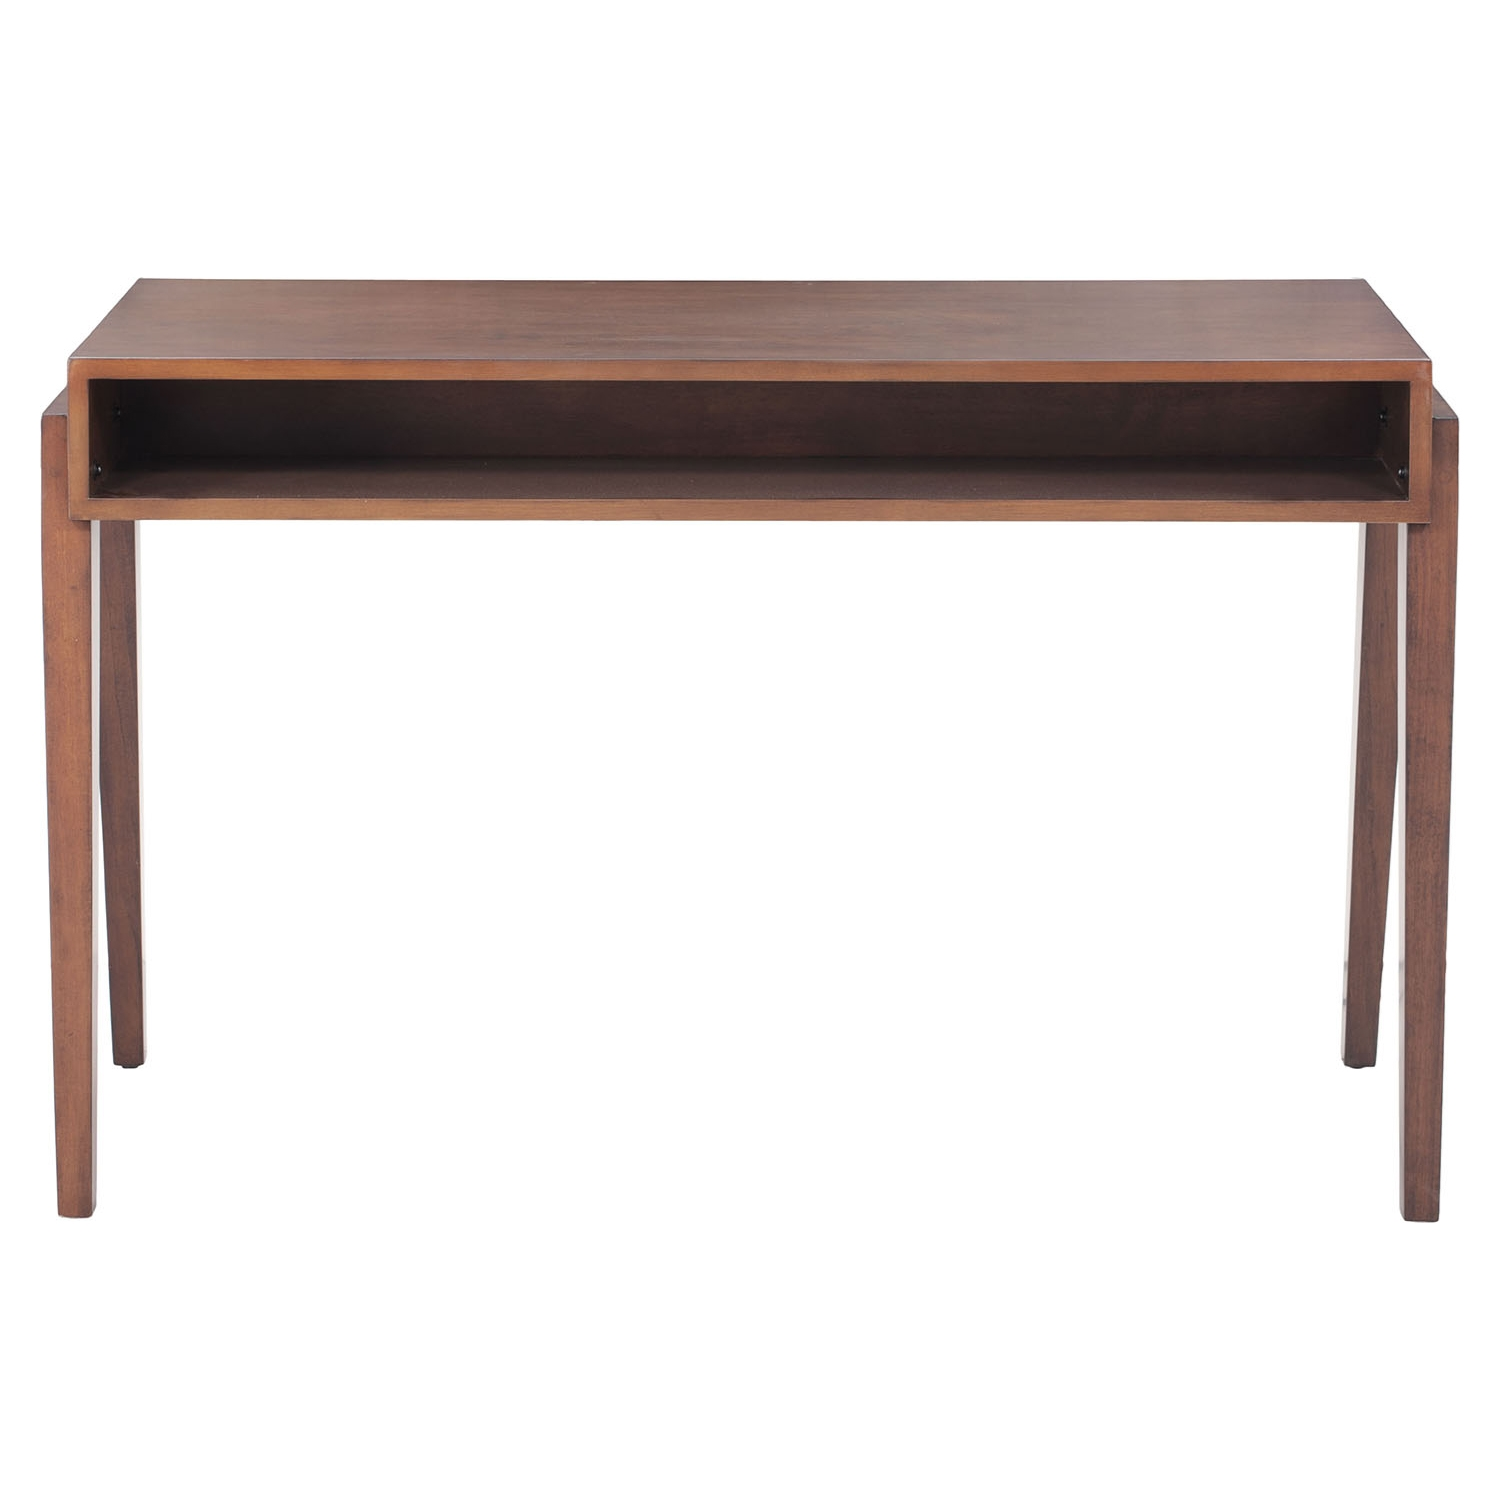 Linea Walnut Desk - ZM-199054